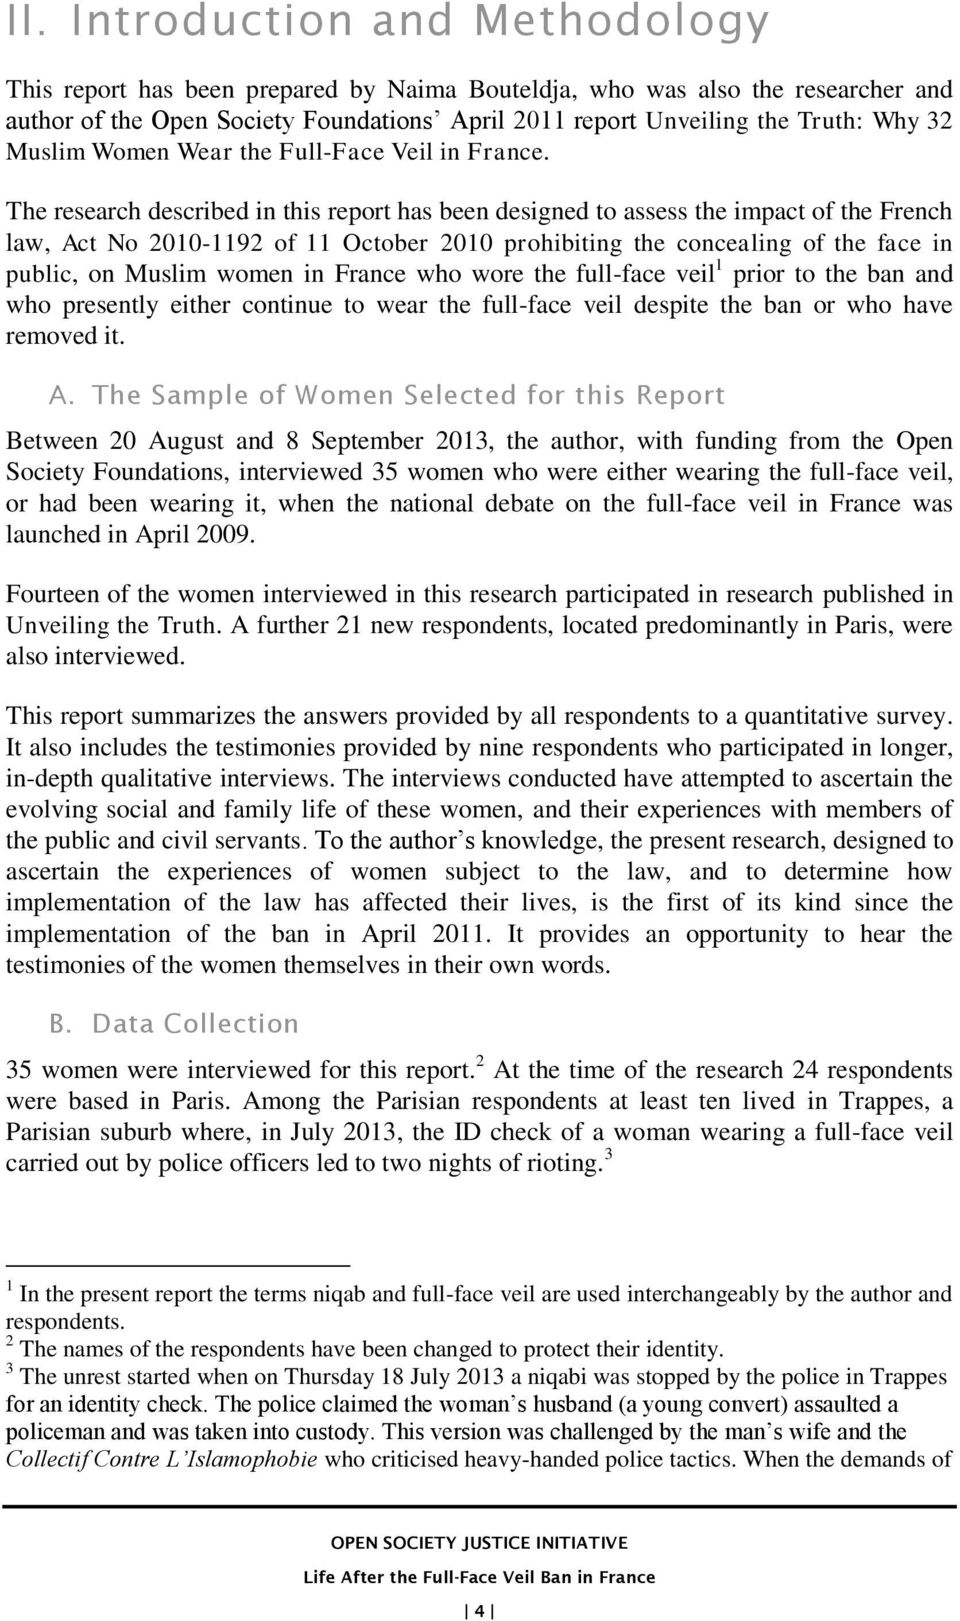 The research described in this report has been designed to assess the impact of the French law, Act No 2010-1192 of 11 October 2010 prohibiting the concealing of the face in public, on Muslim women